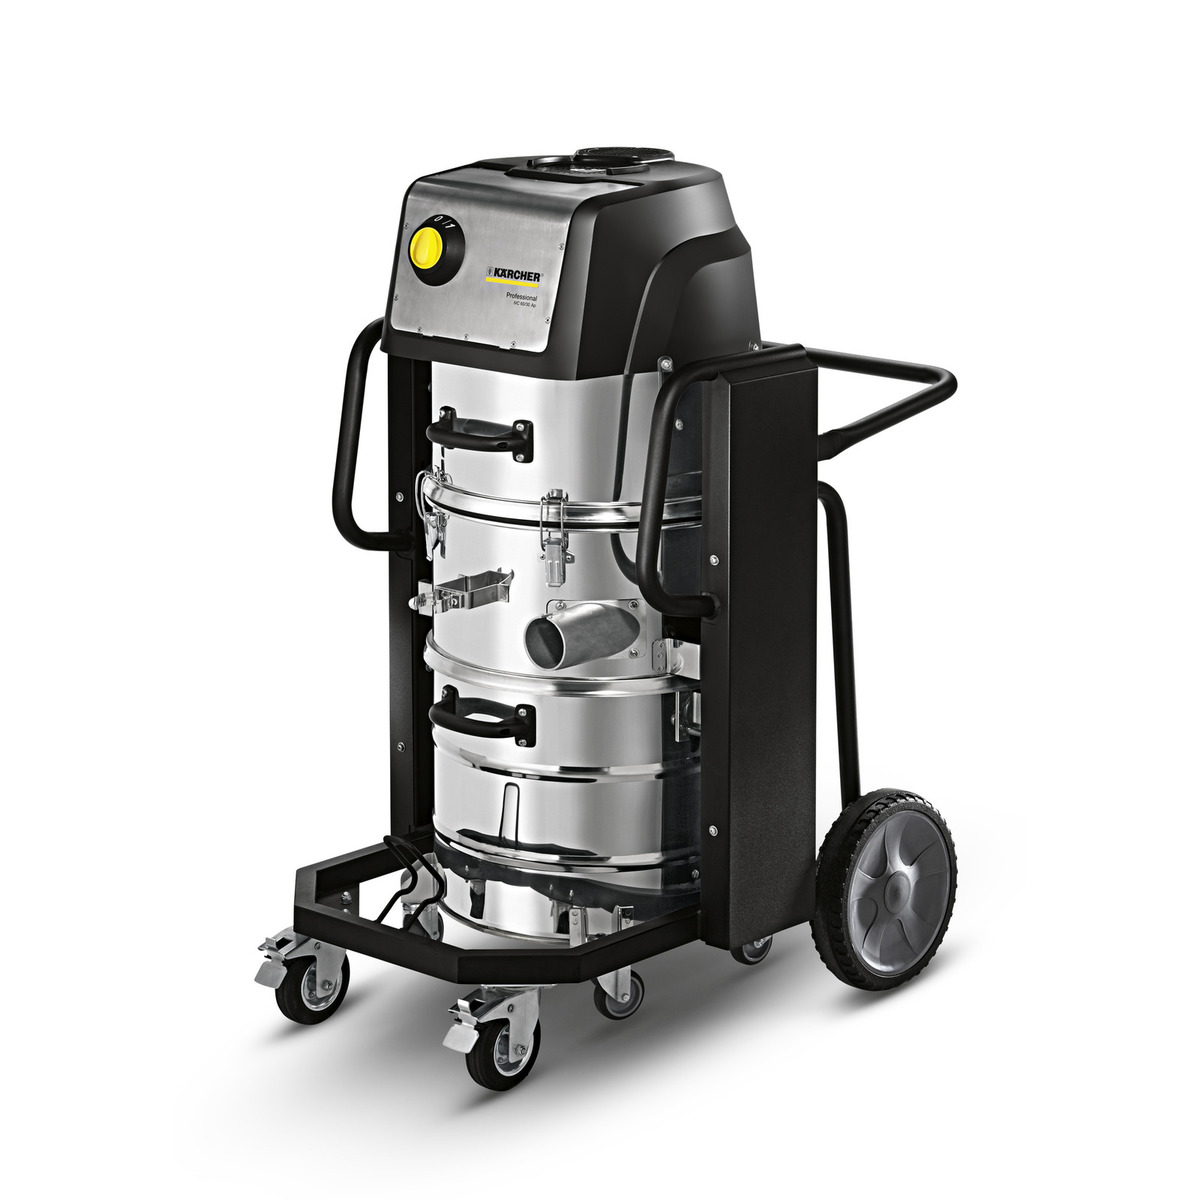 Karcher Compact Industrial Wet & Dry Vacuum Cleaner IVC60/30Ap